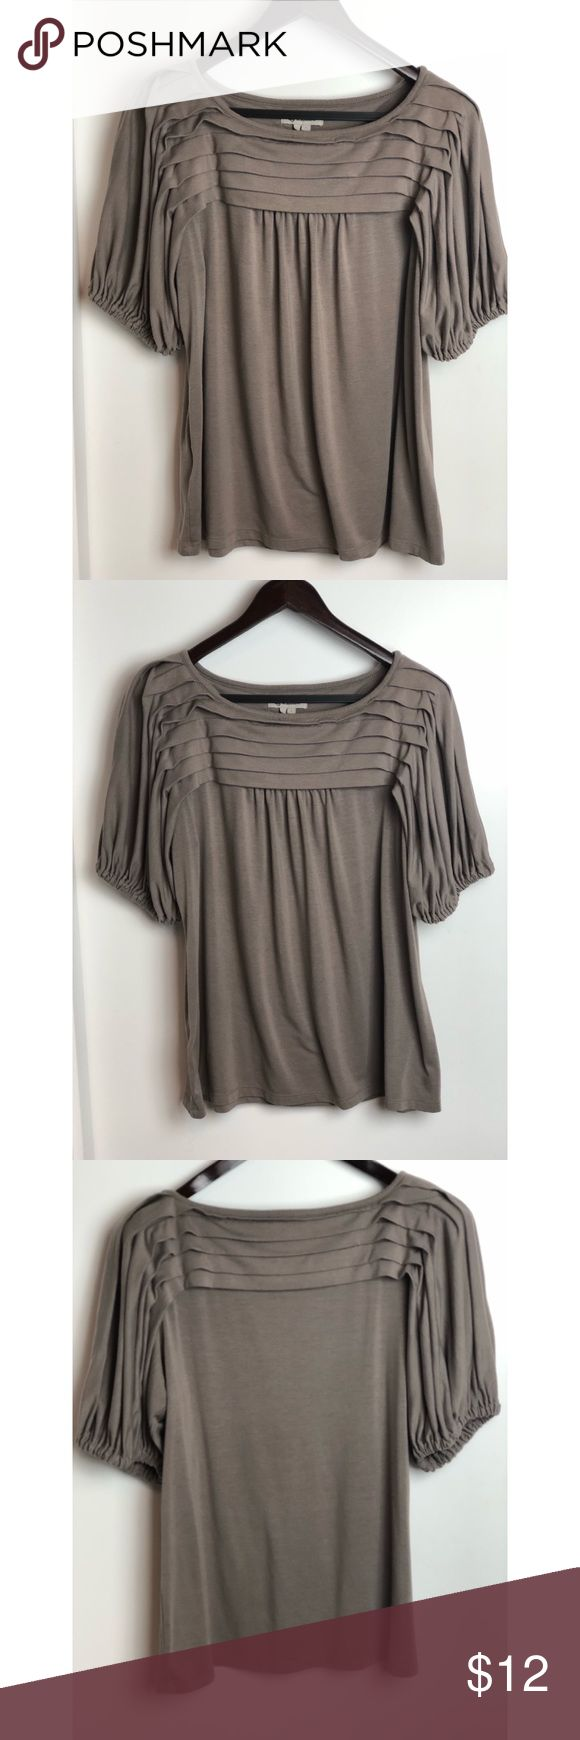 Taupe Shirt fr BCBGeneration Great taupe shirt w accordion style detailing on sleeves. Great solid material. Great for work. BCBGeneration Tops Blouses